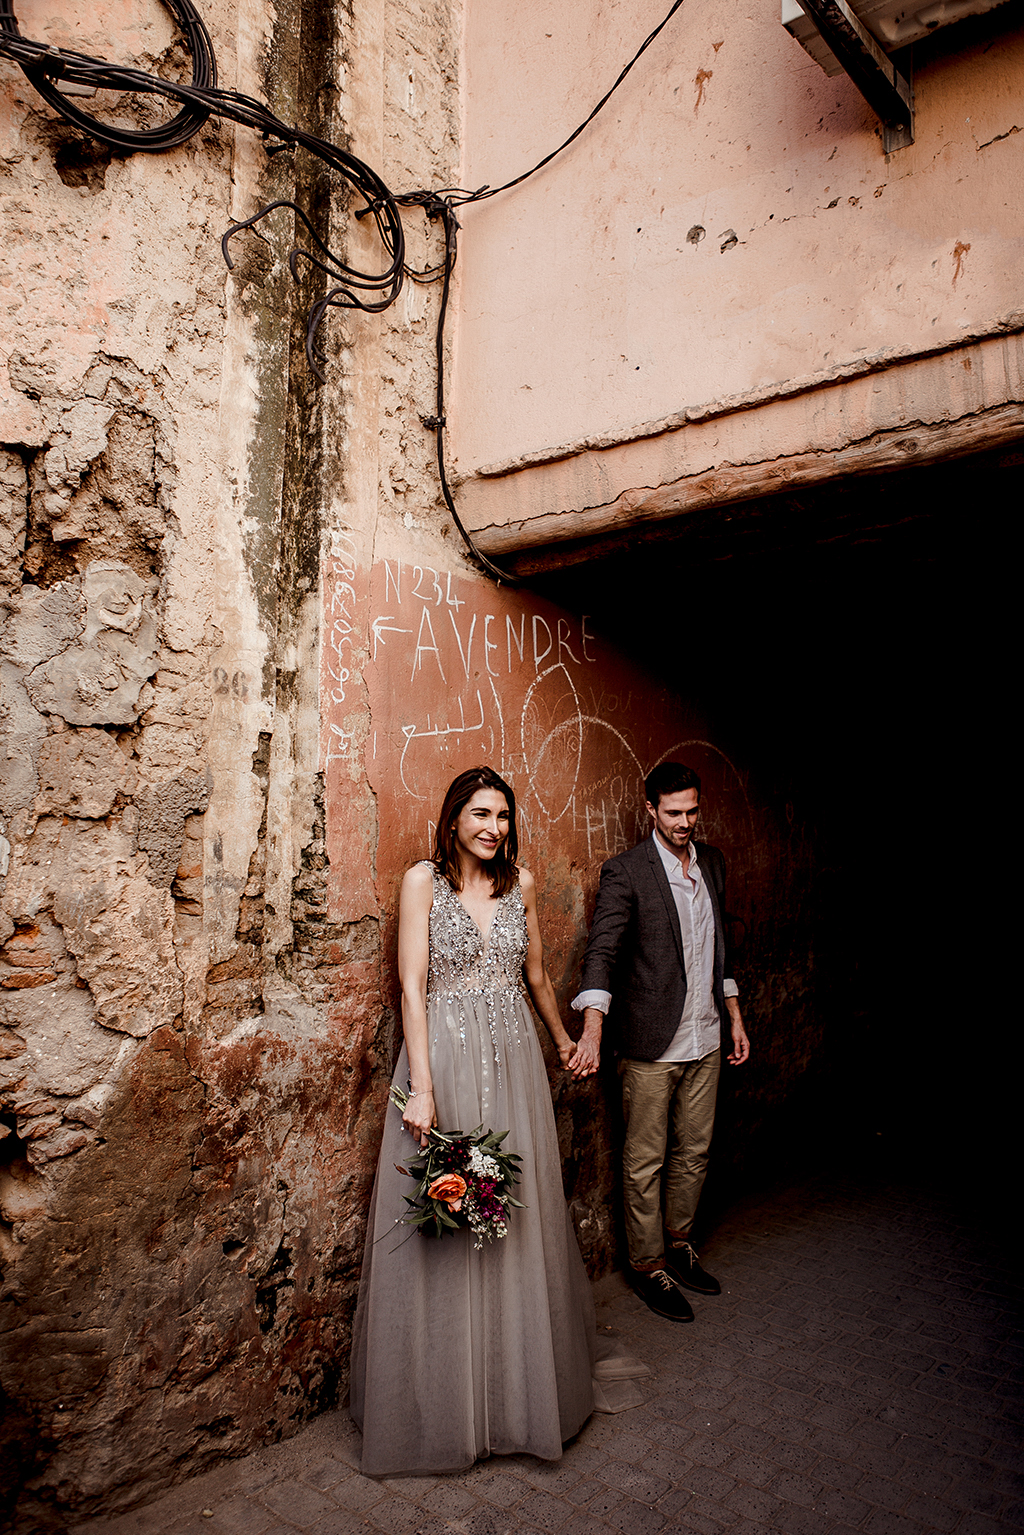 elena-engels-fotografie-marrakech-travel-shooting-reise-bemarrakech_riad_wedding005